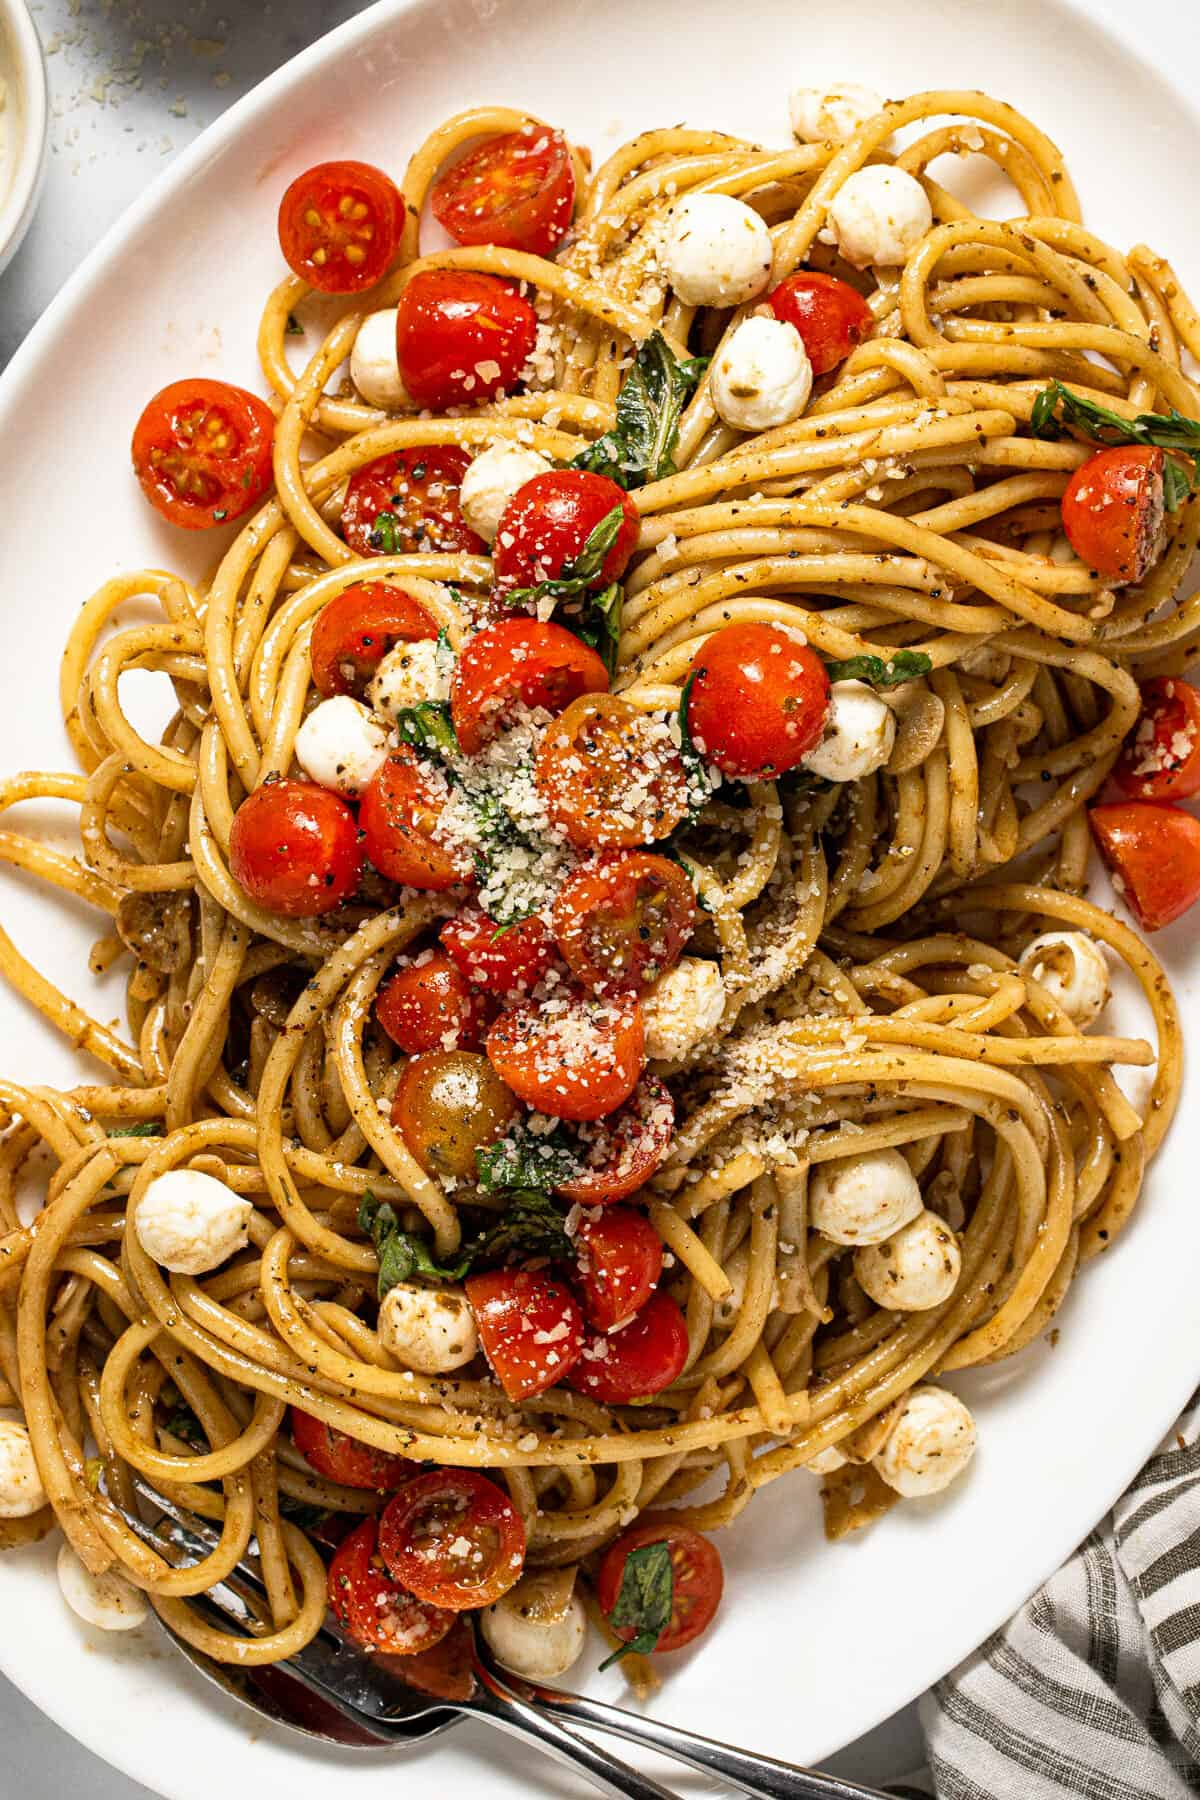 Large white serving platter filled with bruschetta pasta